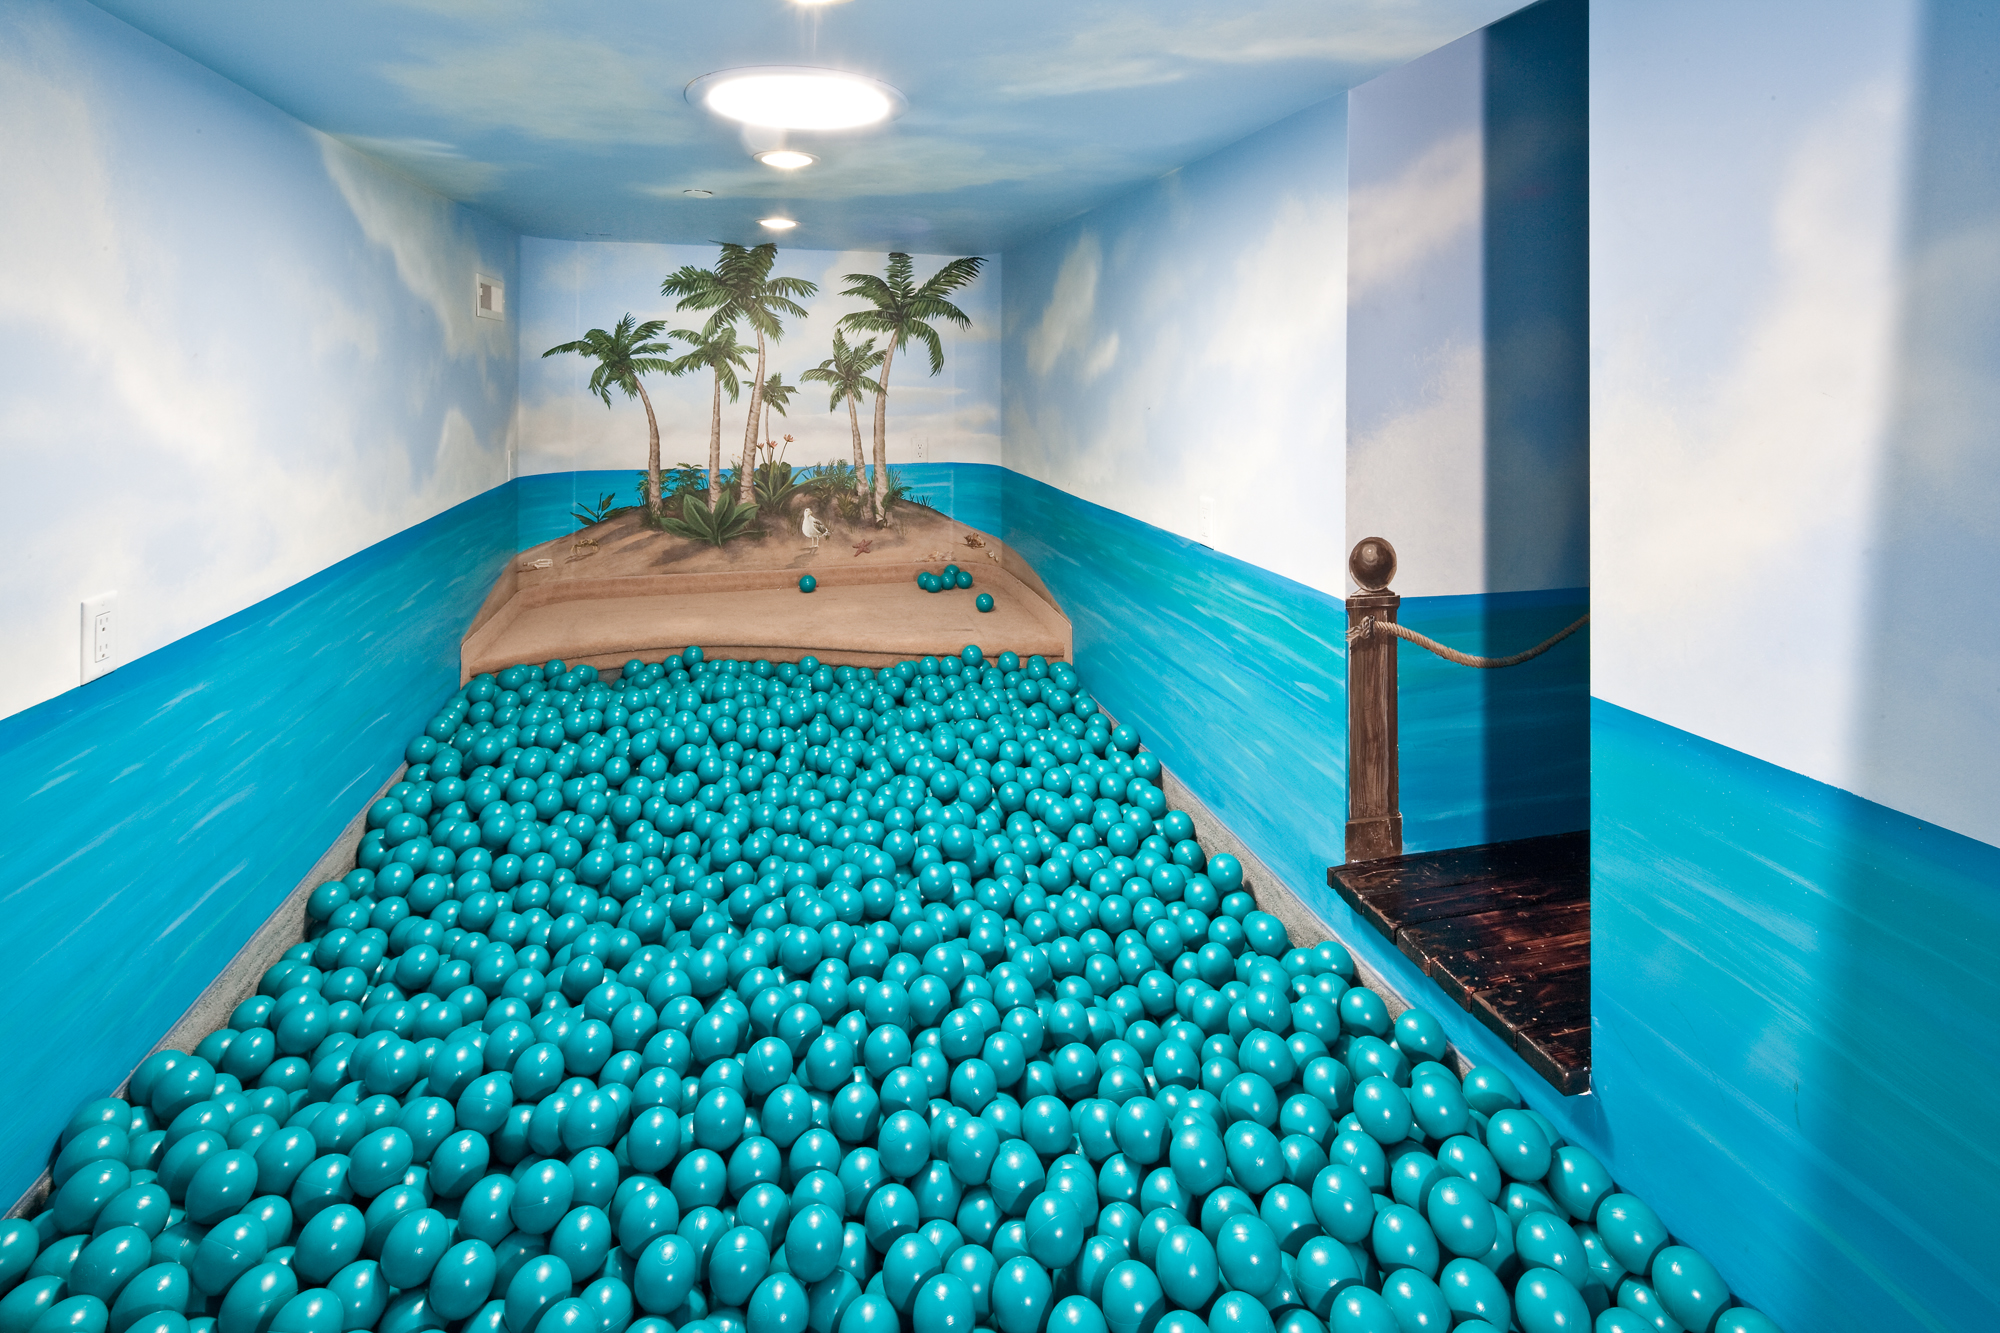 An indoor ball pit that looks like a tropical island on a sunny day with clear skies.